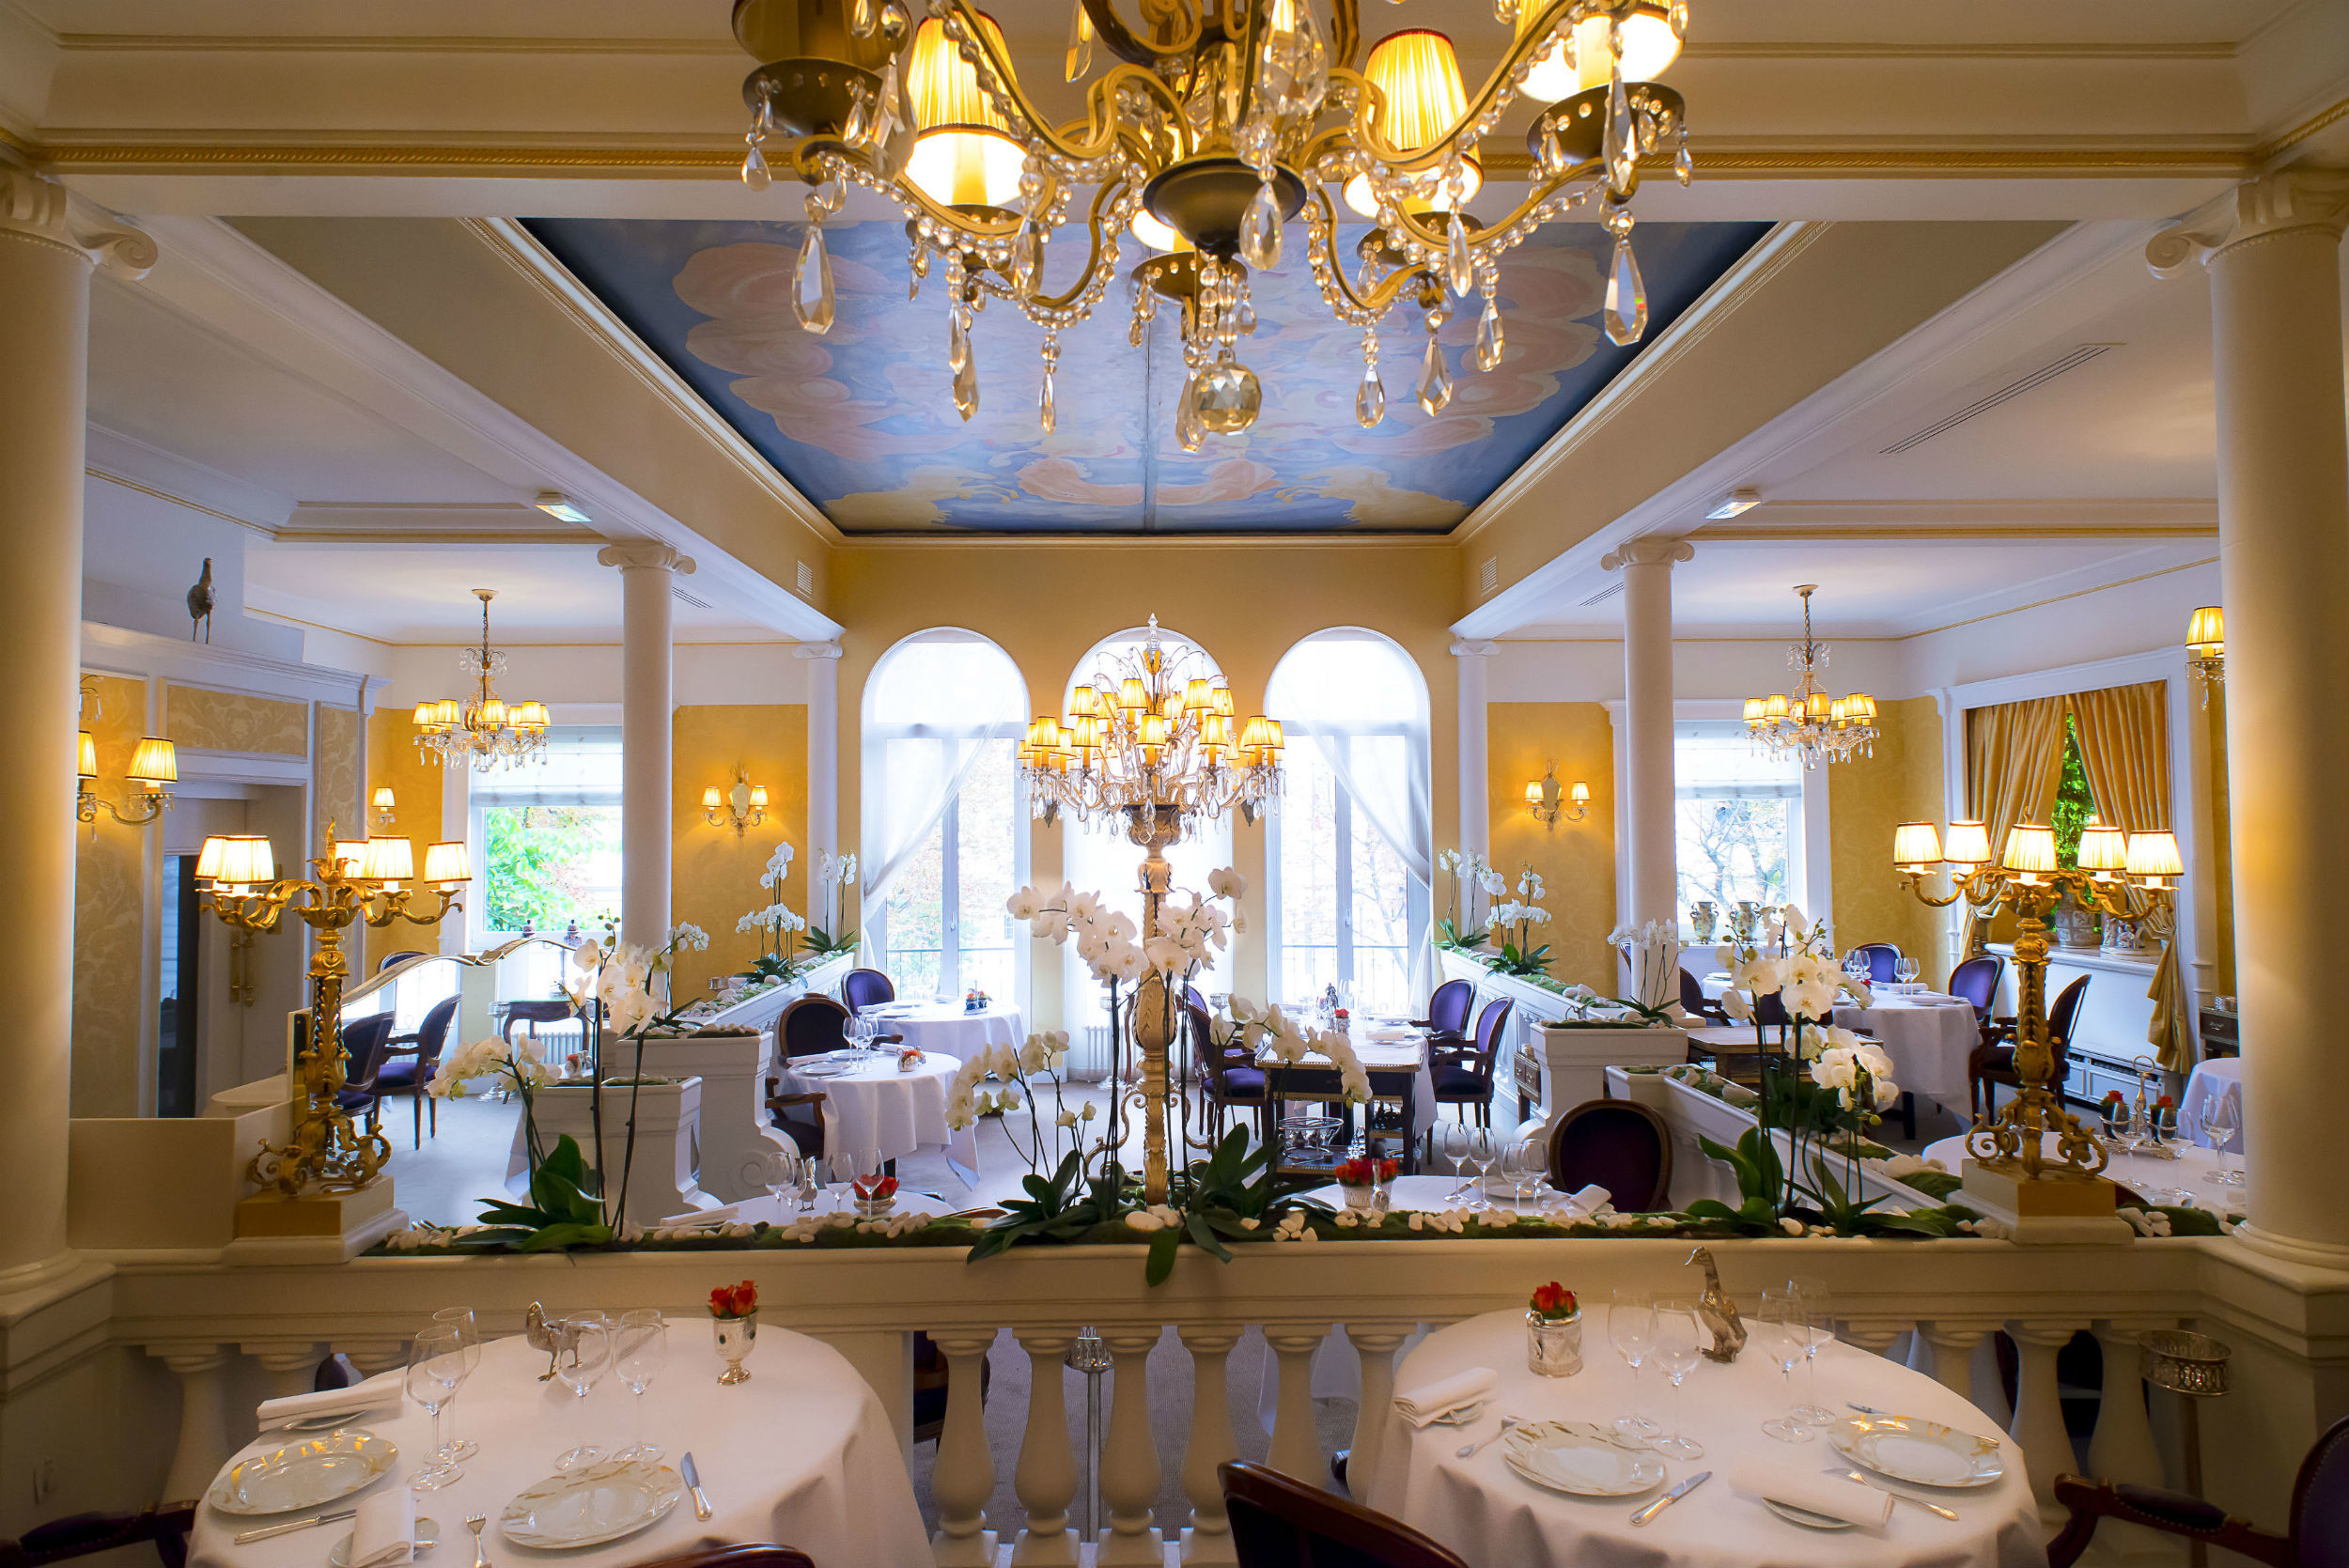 101 great things to do in paris culture restaurants for Paris restaurant